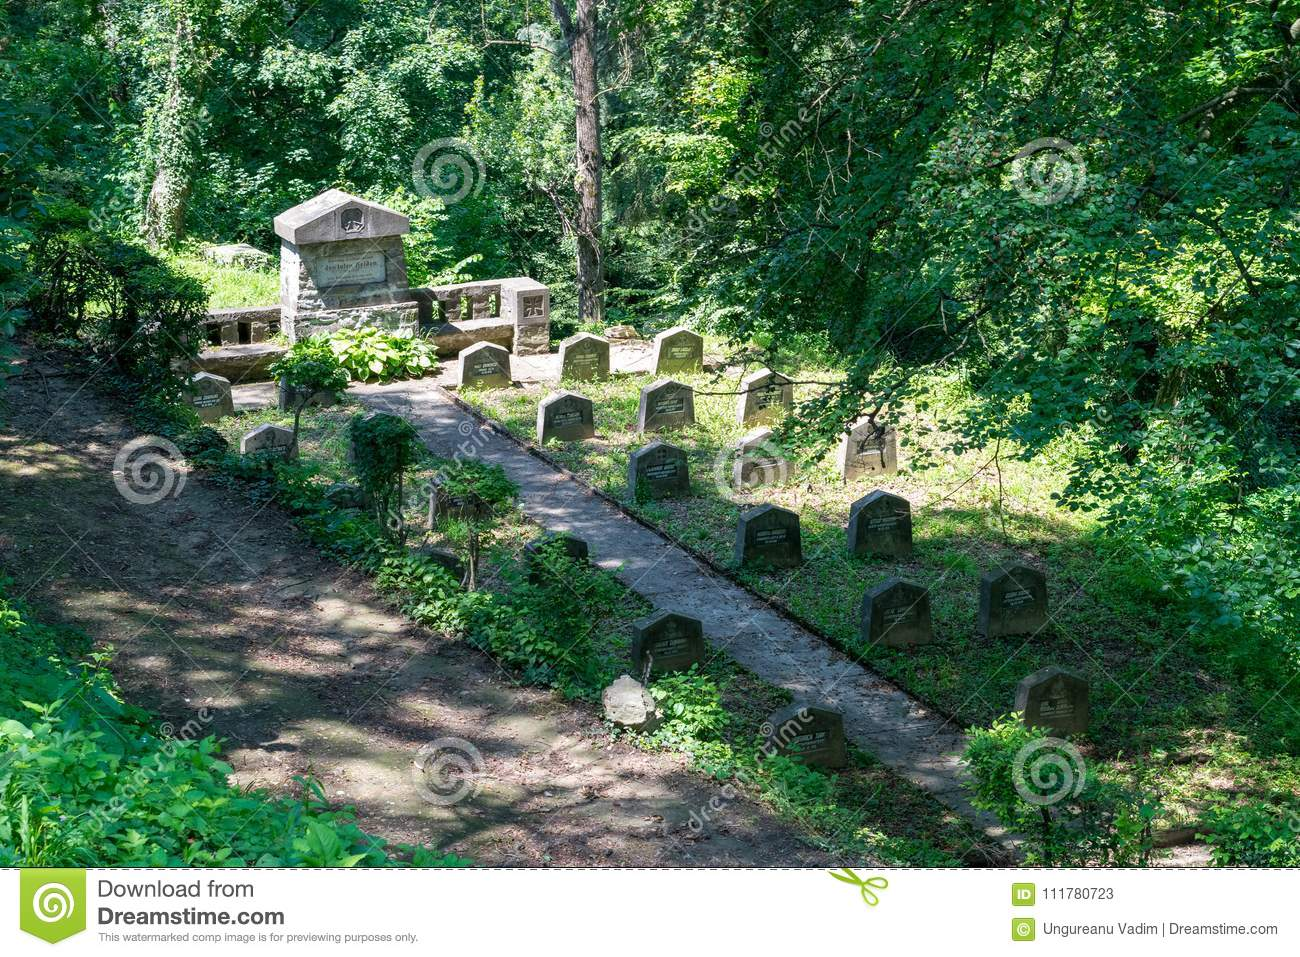 WWI Cemetery, near Saxon cemetery, located next to the Church on the Hill in Sighisoara, Romania